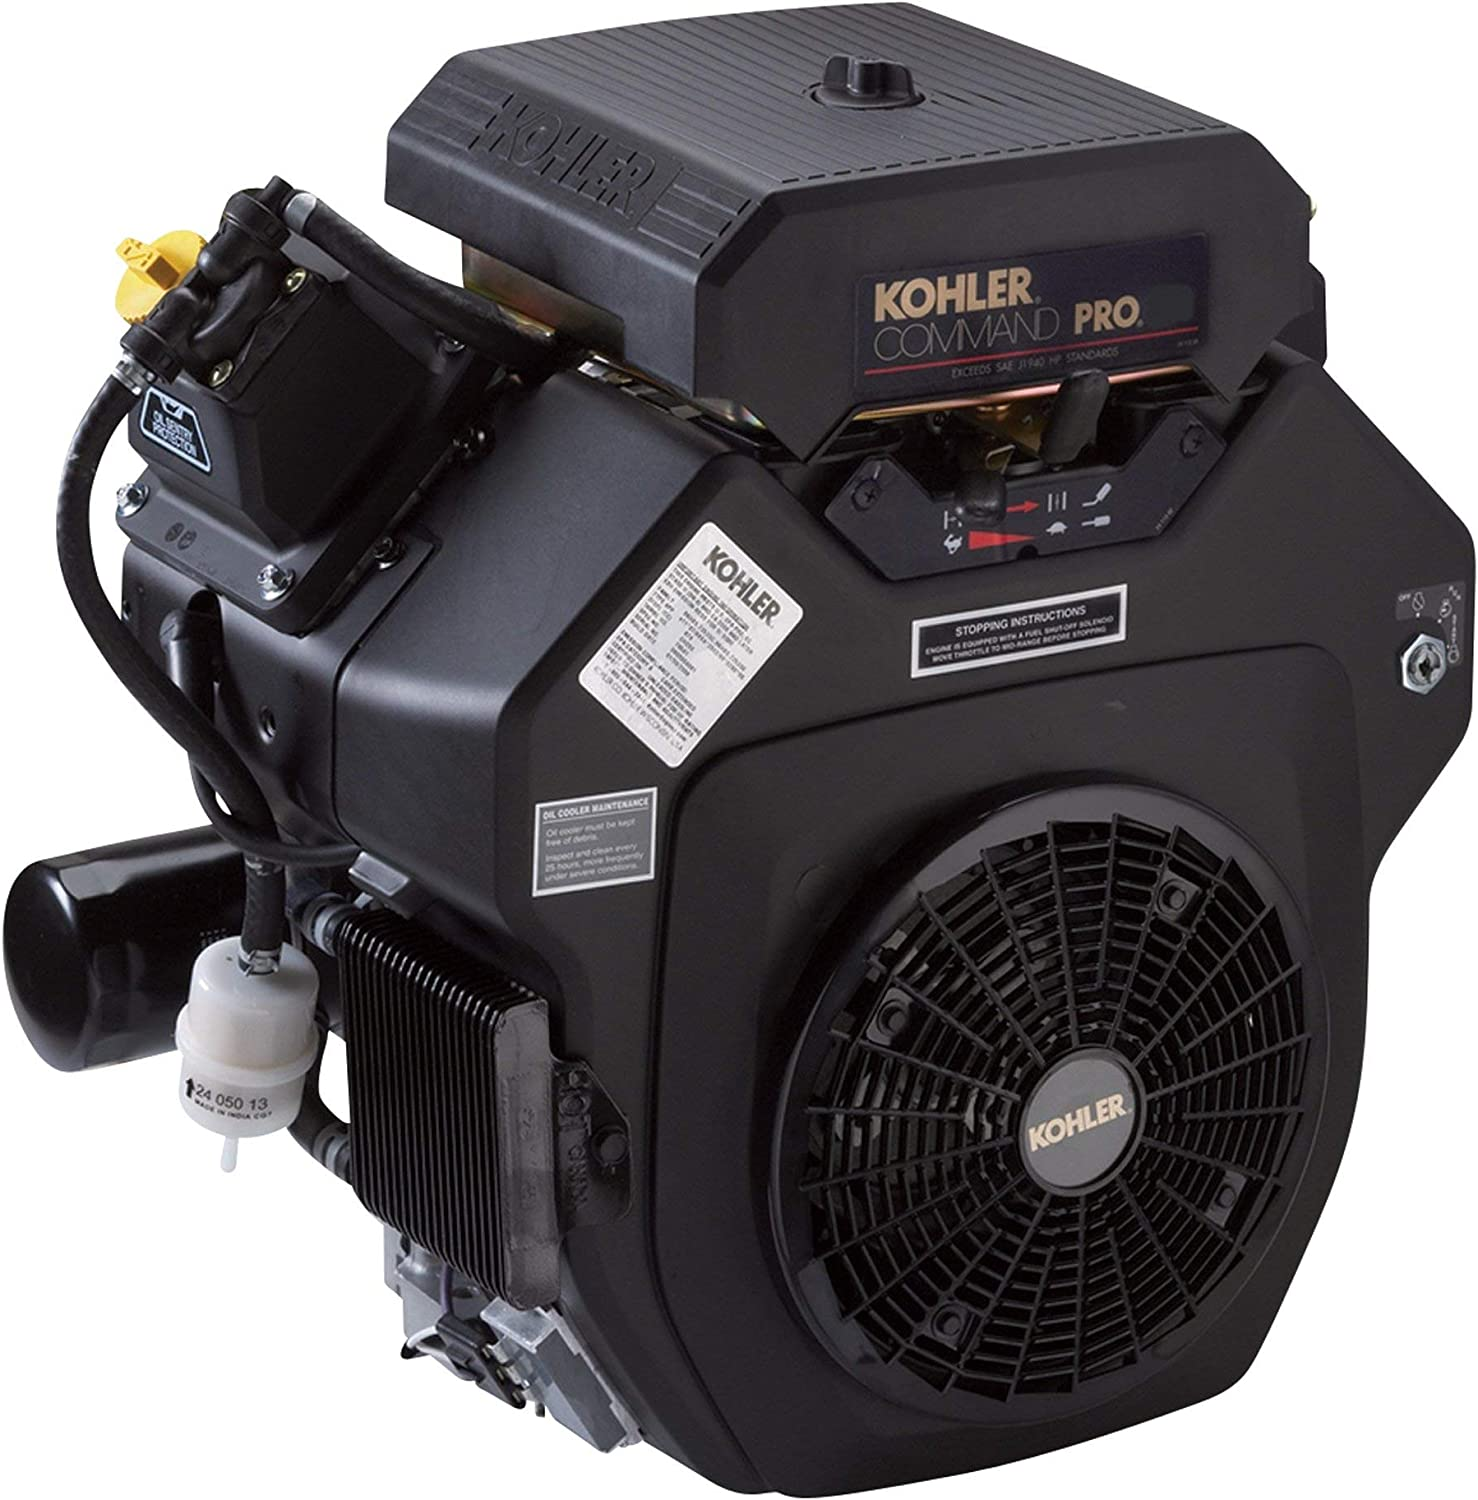 Kohler Command Pro V-Twin OHV Horizontal Engine with Electric Start - 725cc, 1 7/16in. x 4 29/64in. Shaft, Model Number PA-CH740-3005